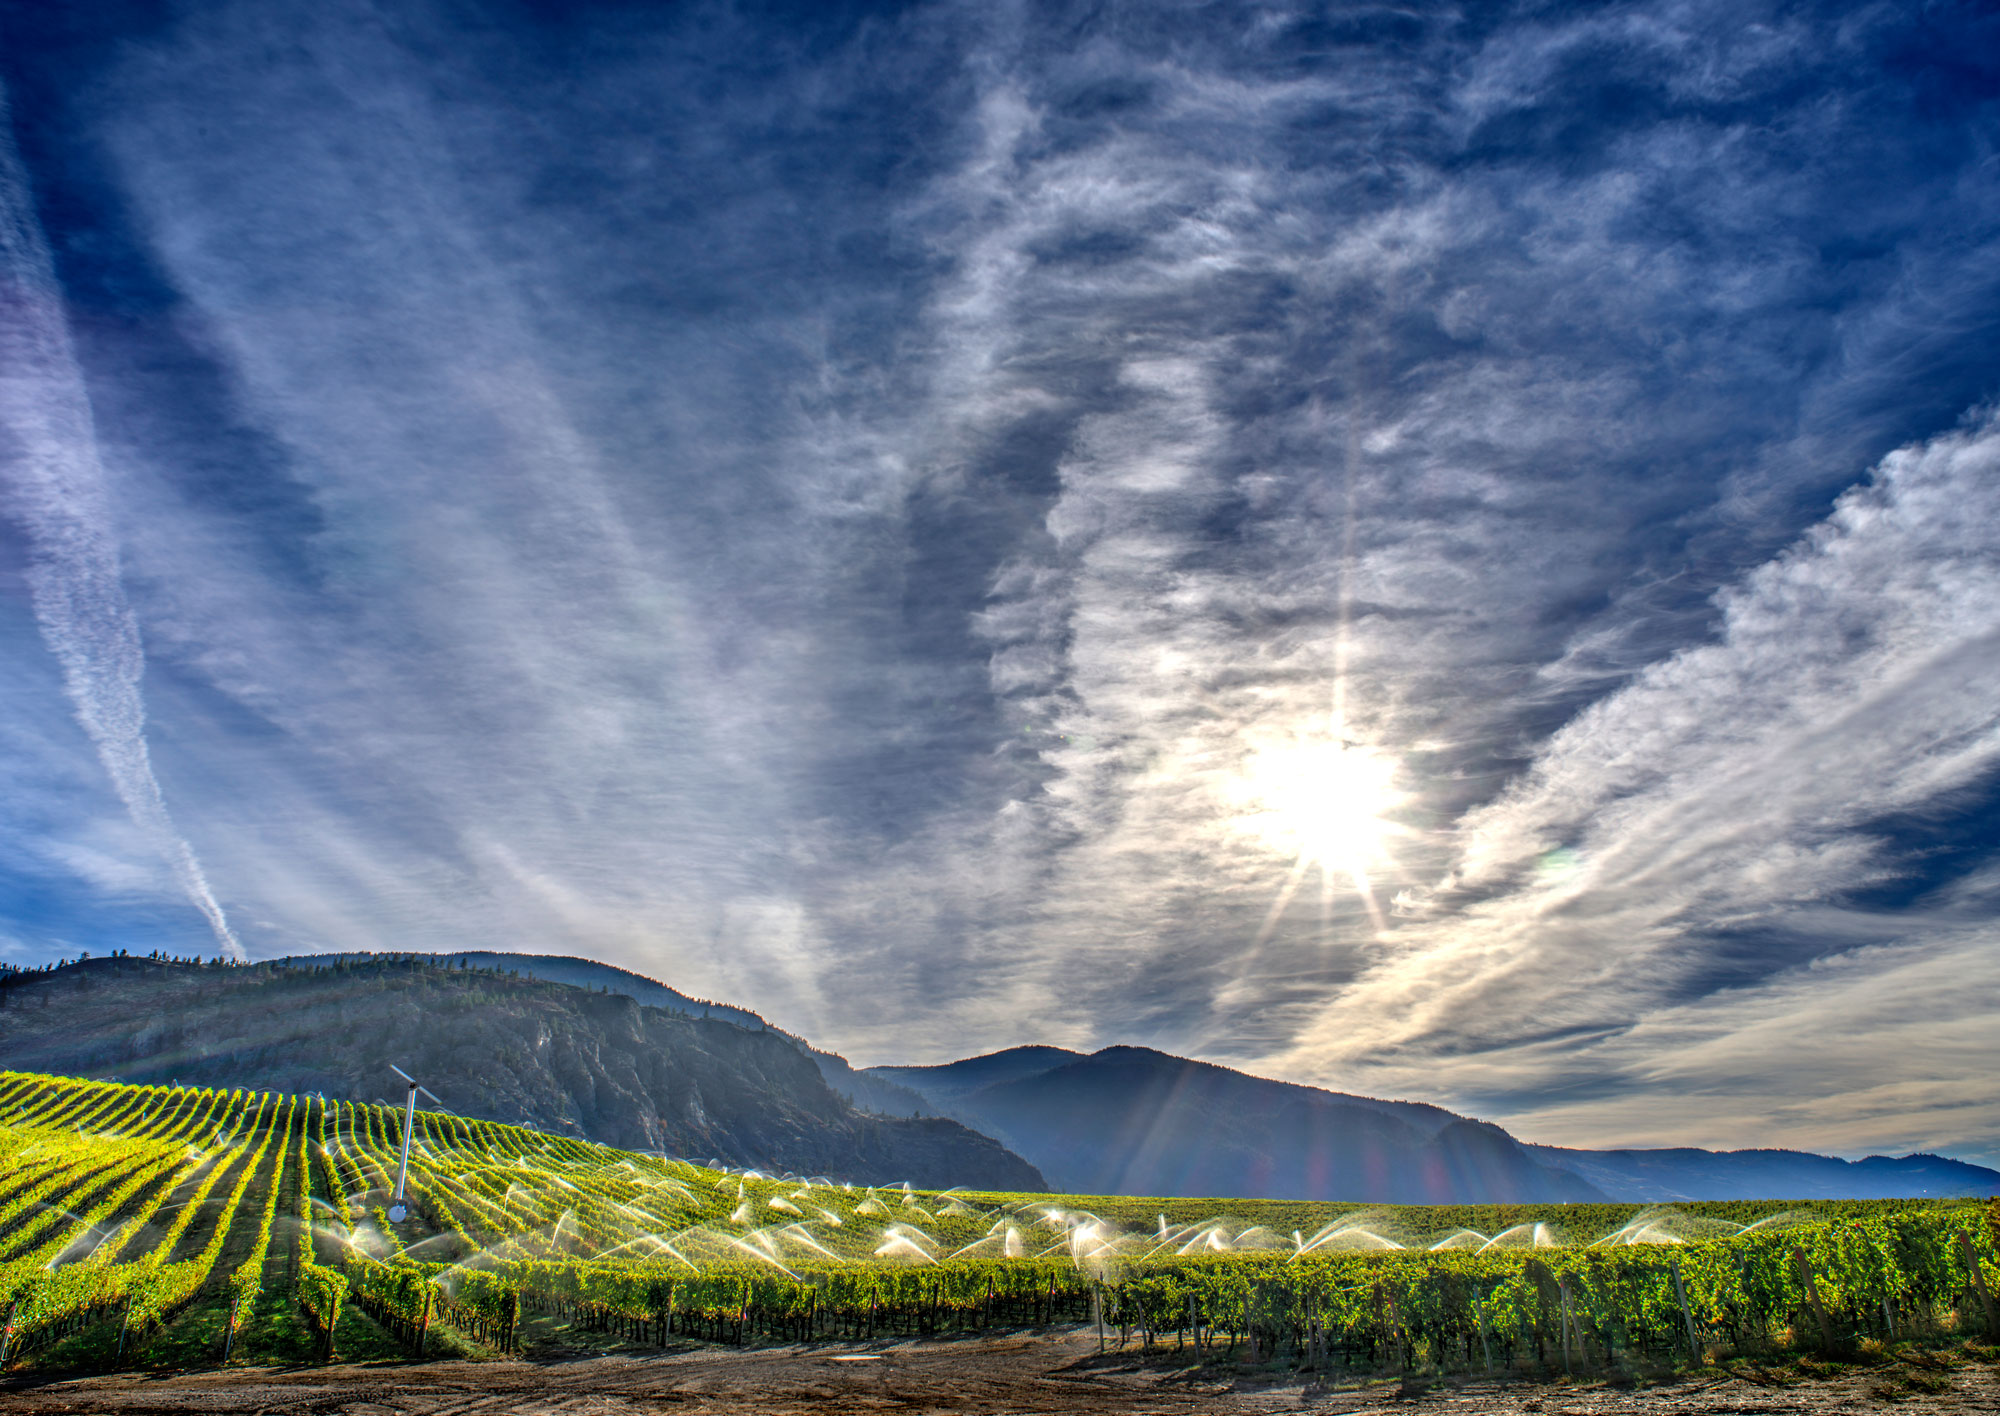 Sunrock Vineyards Okanagan Valley British Columbia